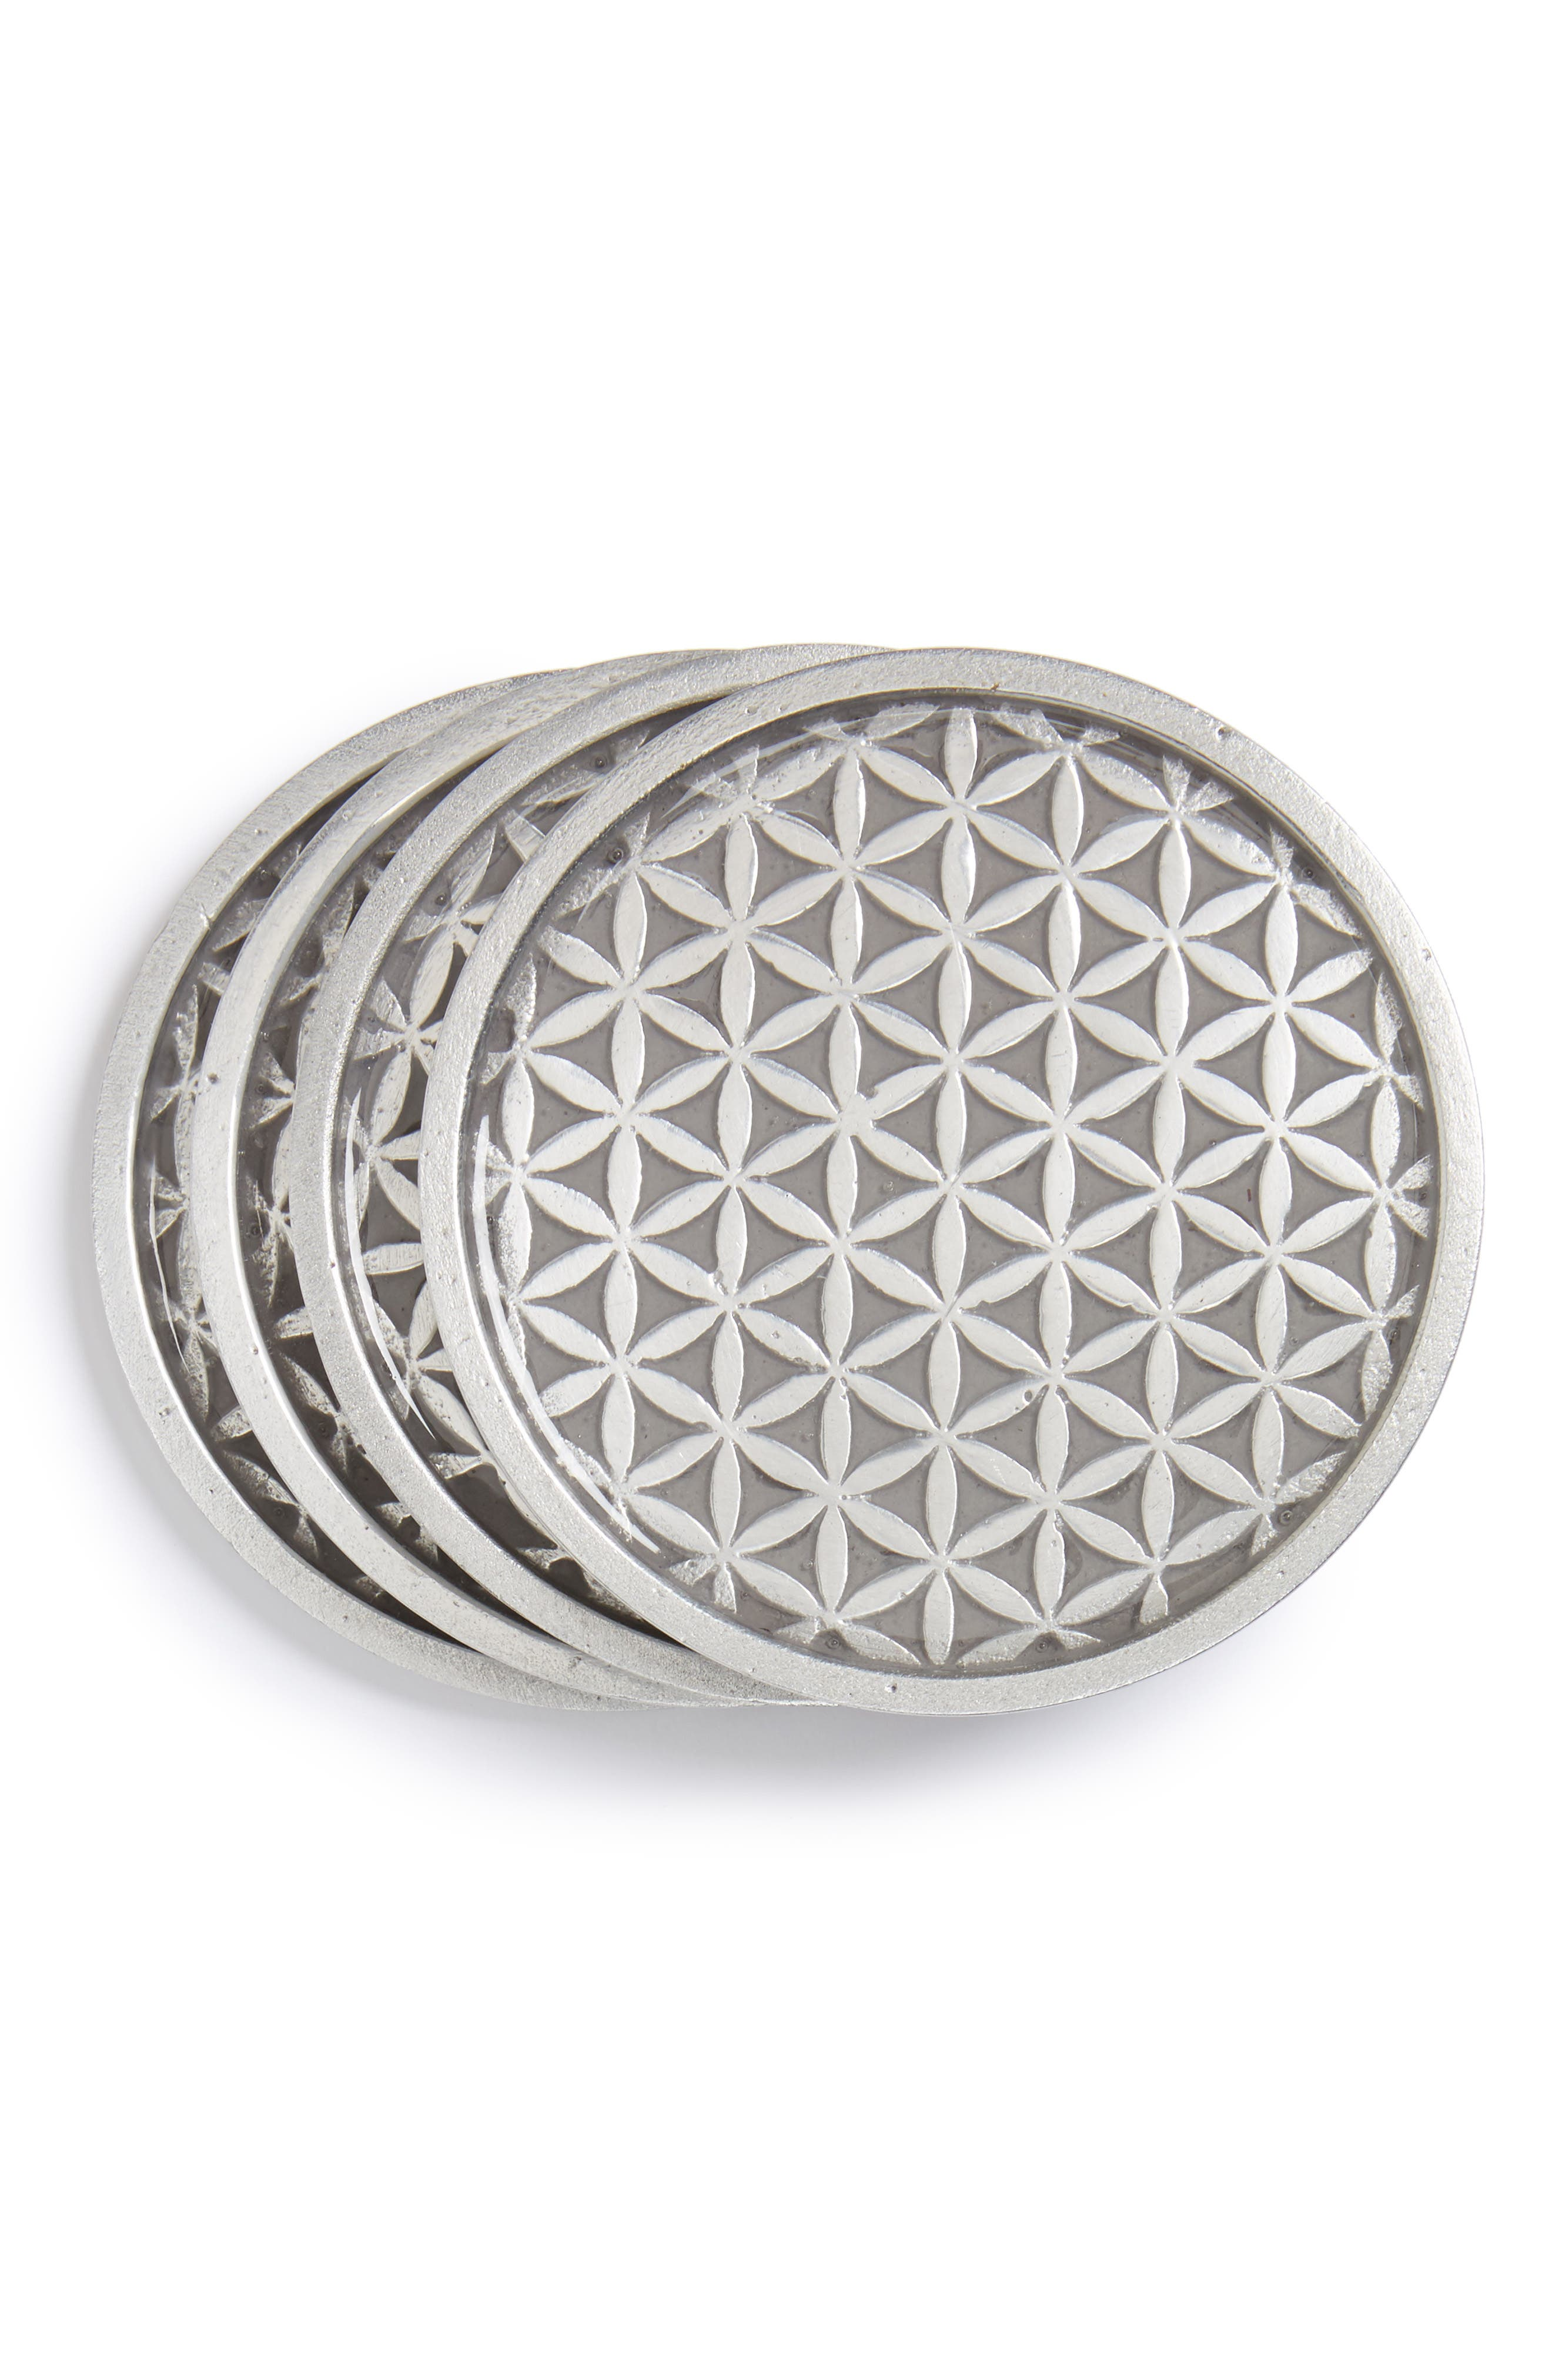 Flower of Life Set of 4 Coasters,                         Main,                         color, 020